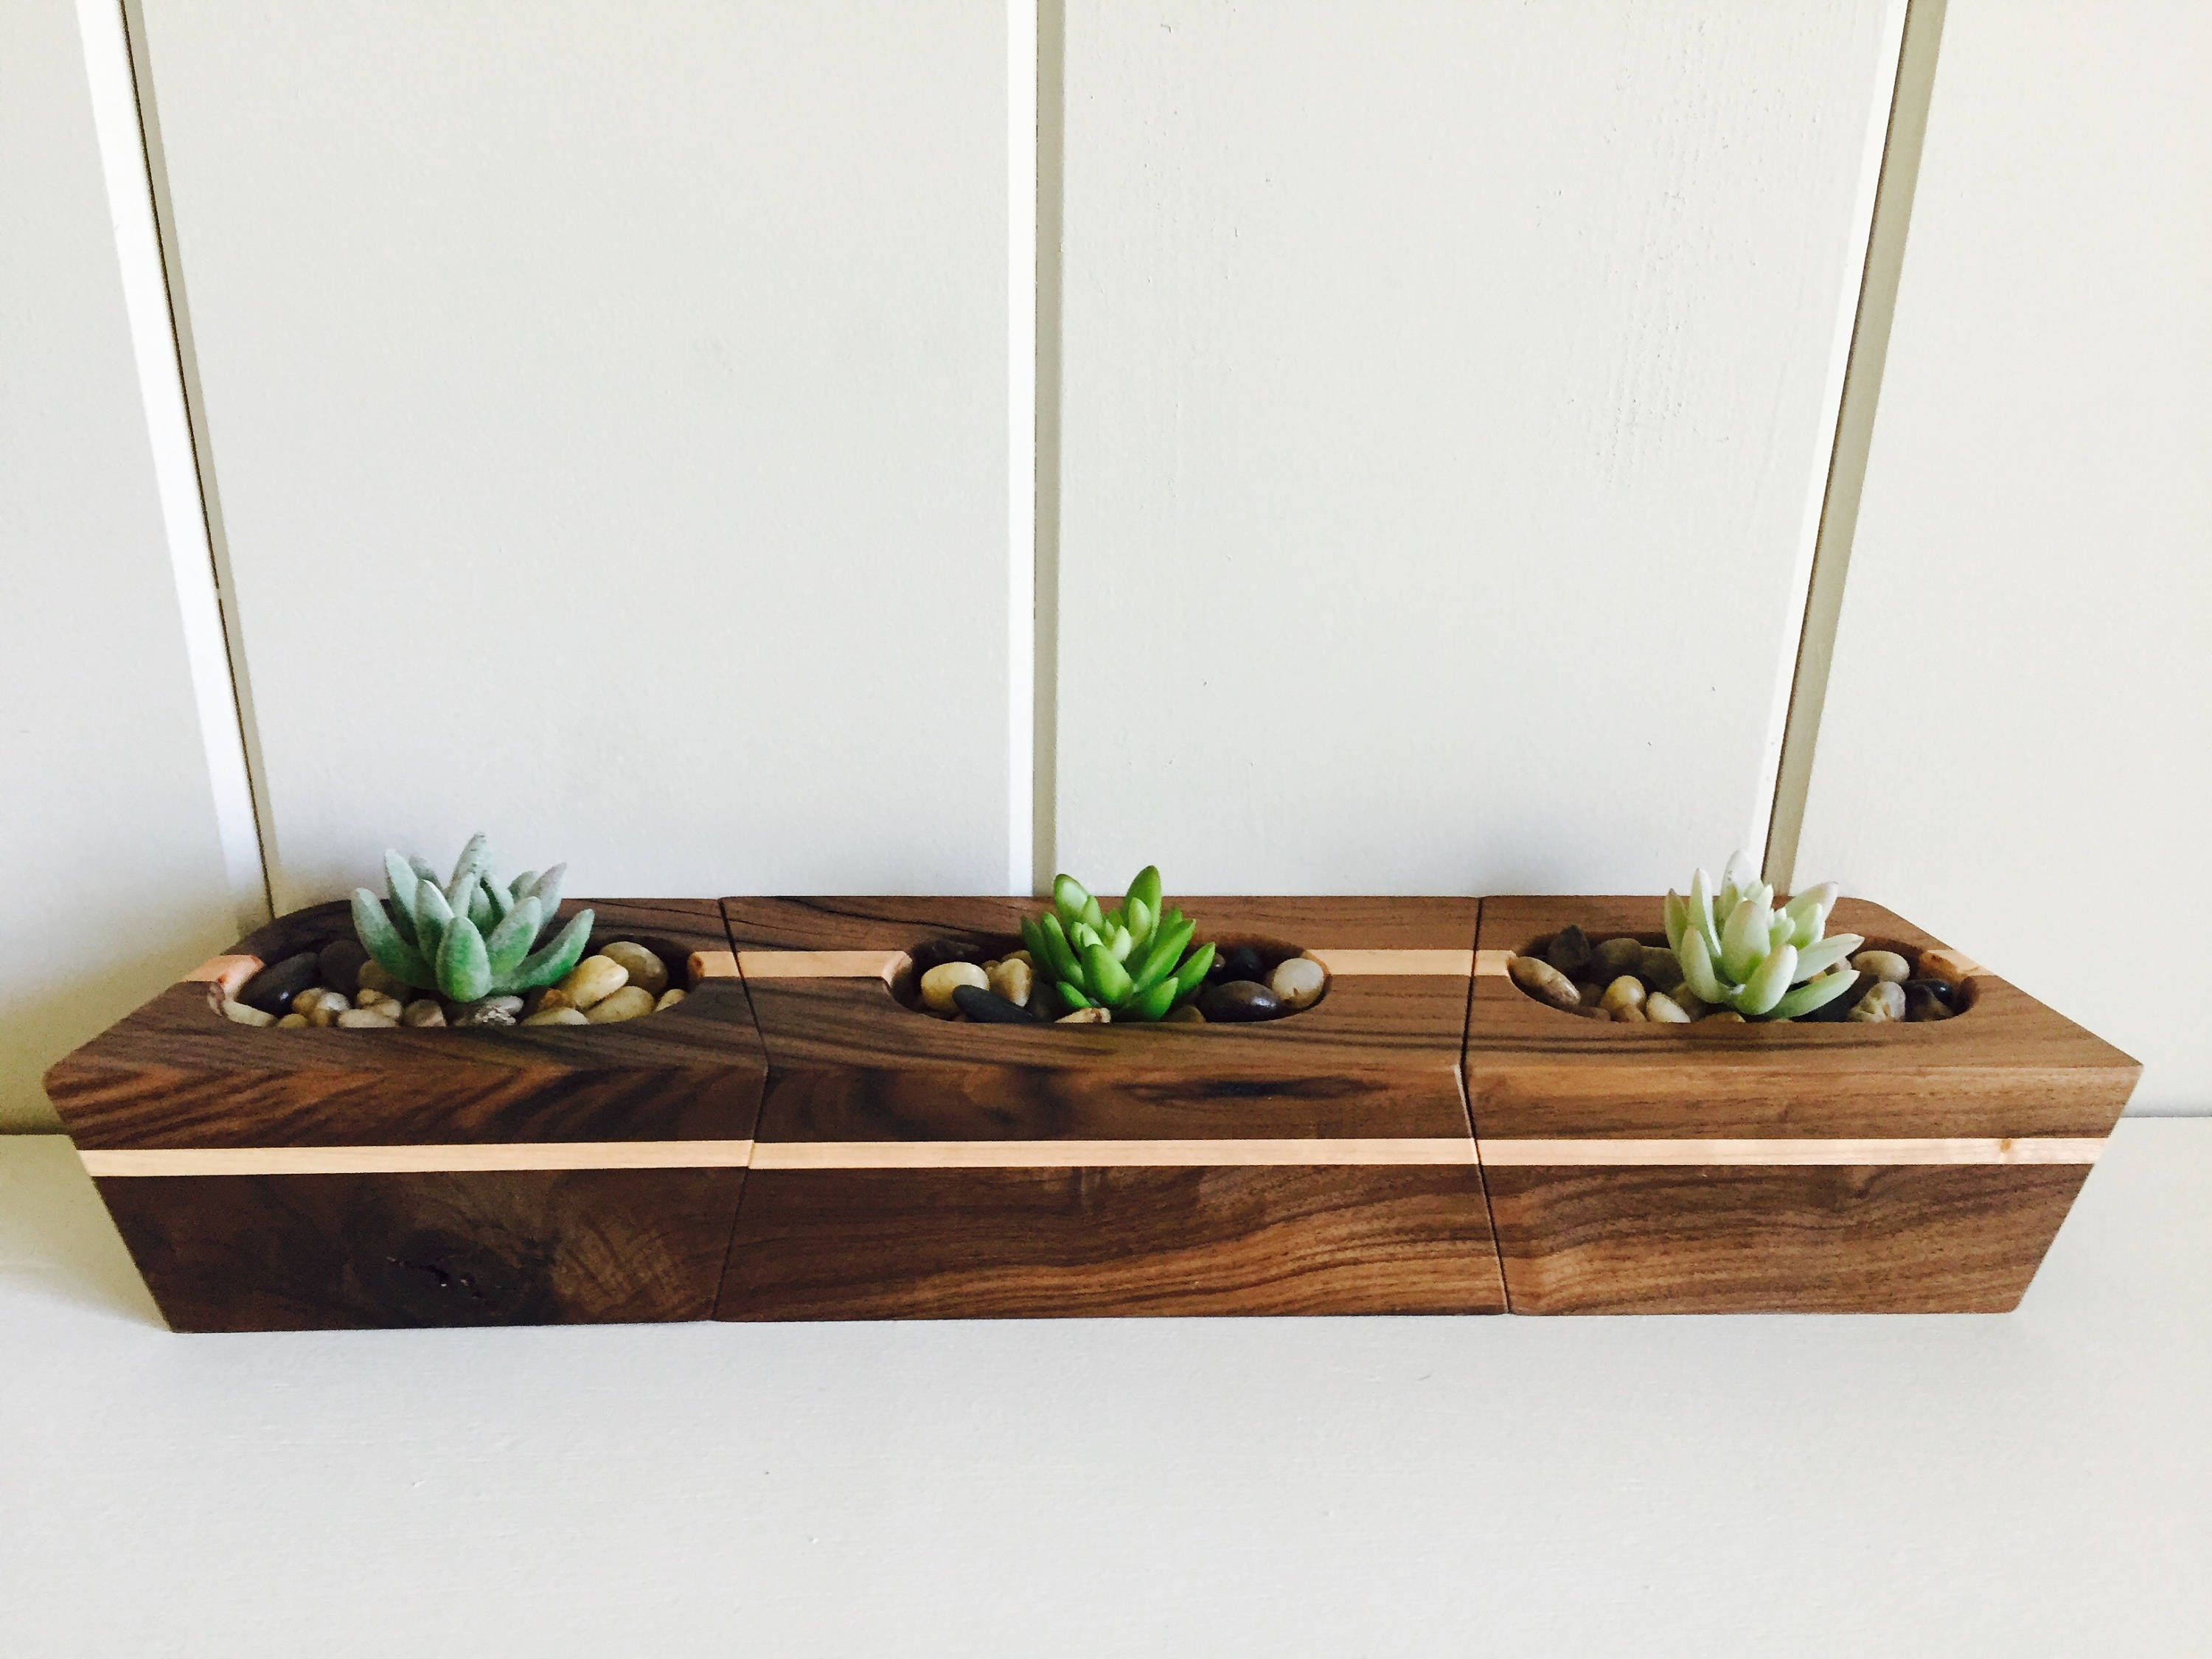 Wood Planters, Succulent Planters, Air Plant Display, Room Dimensions, Rough